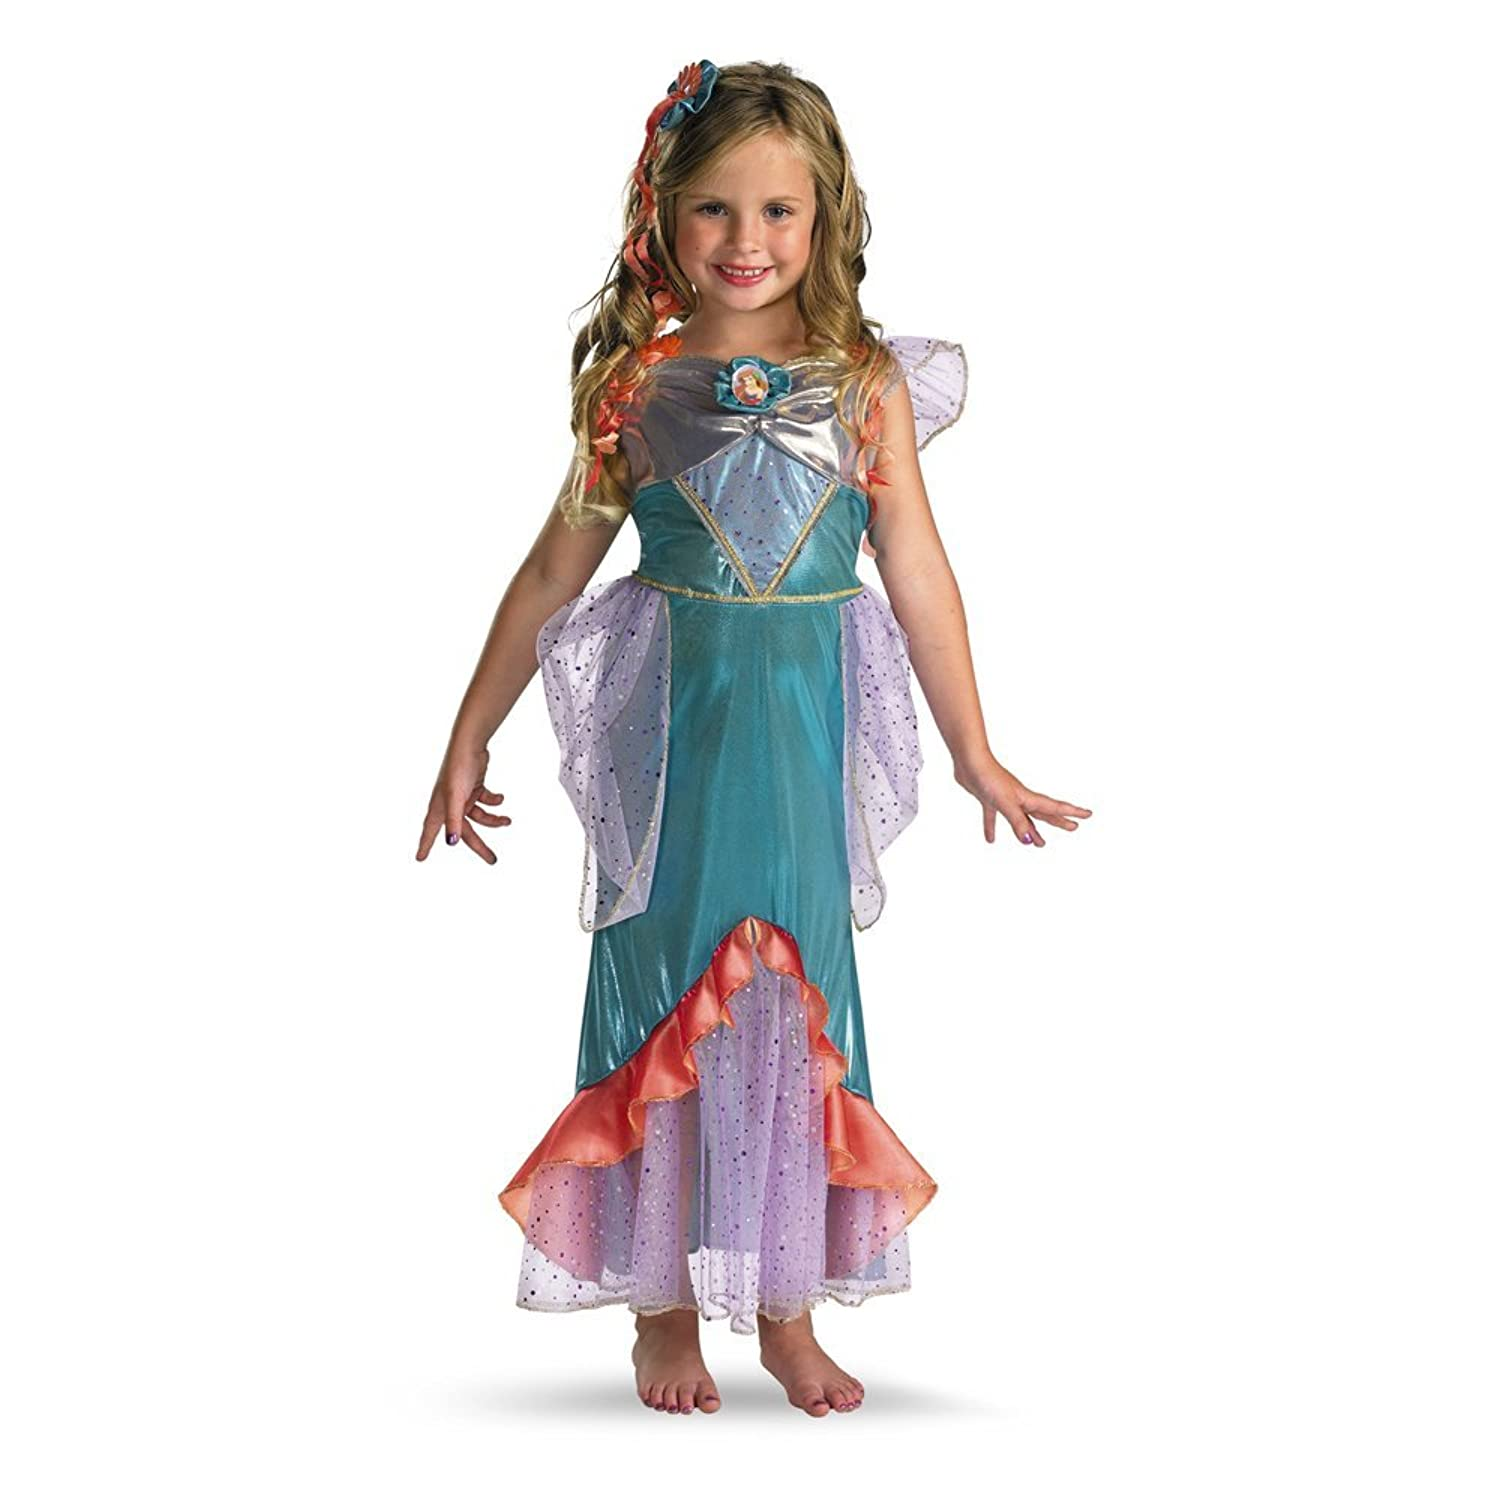 Amazon.com The Little Mermaid Ariel Deluxe Toddler / Child Costume Clothing  sc 1 st  Amazon.com & Amazon.com: The Little Mermaid Ariel Deluxe Toddler / Child Costume ...